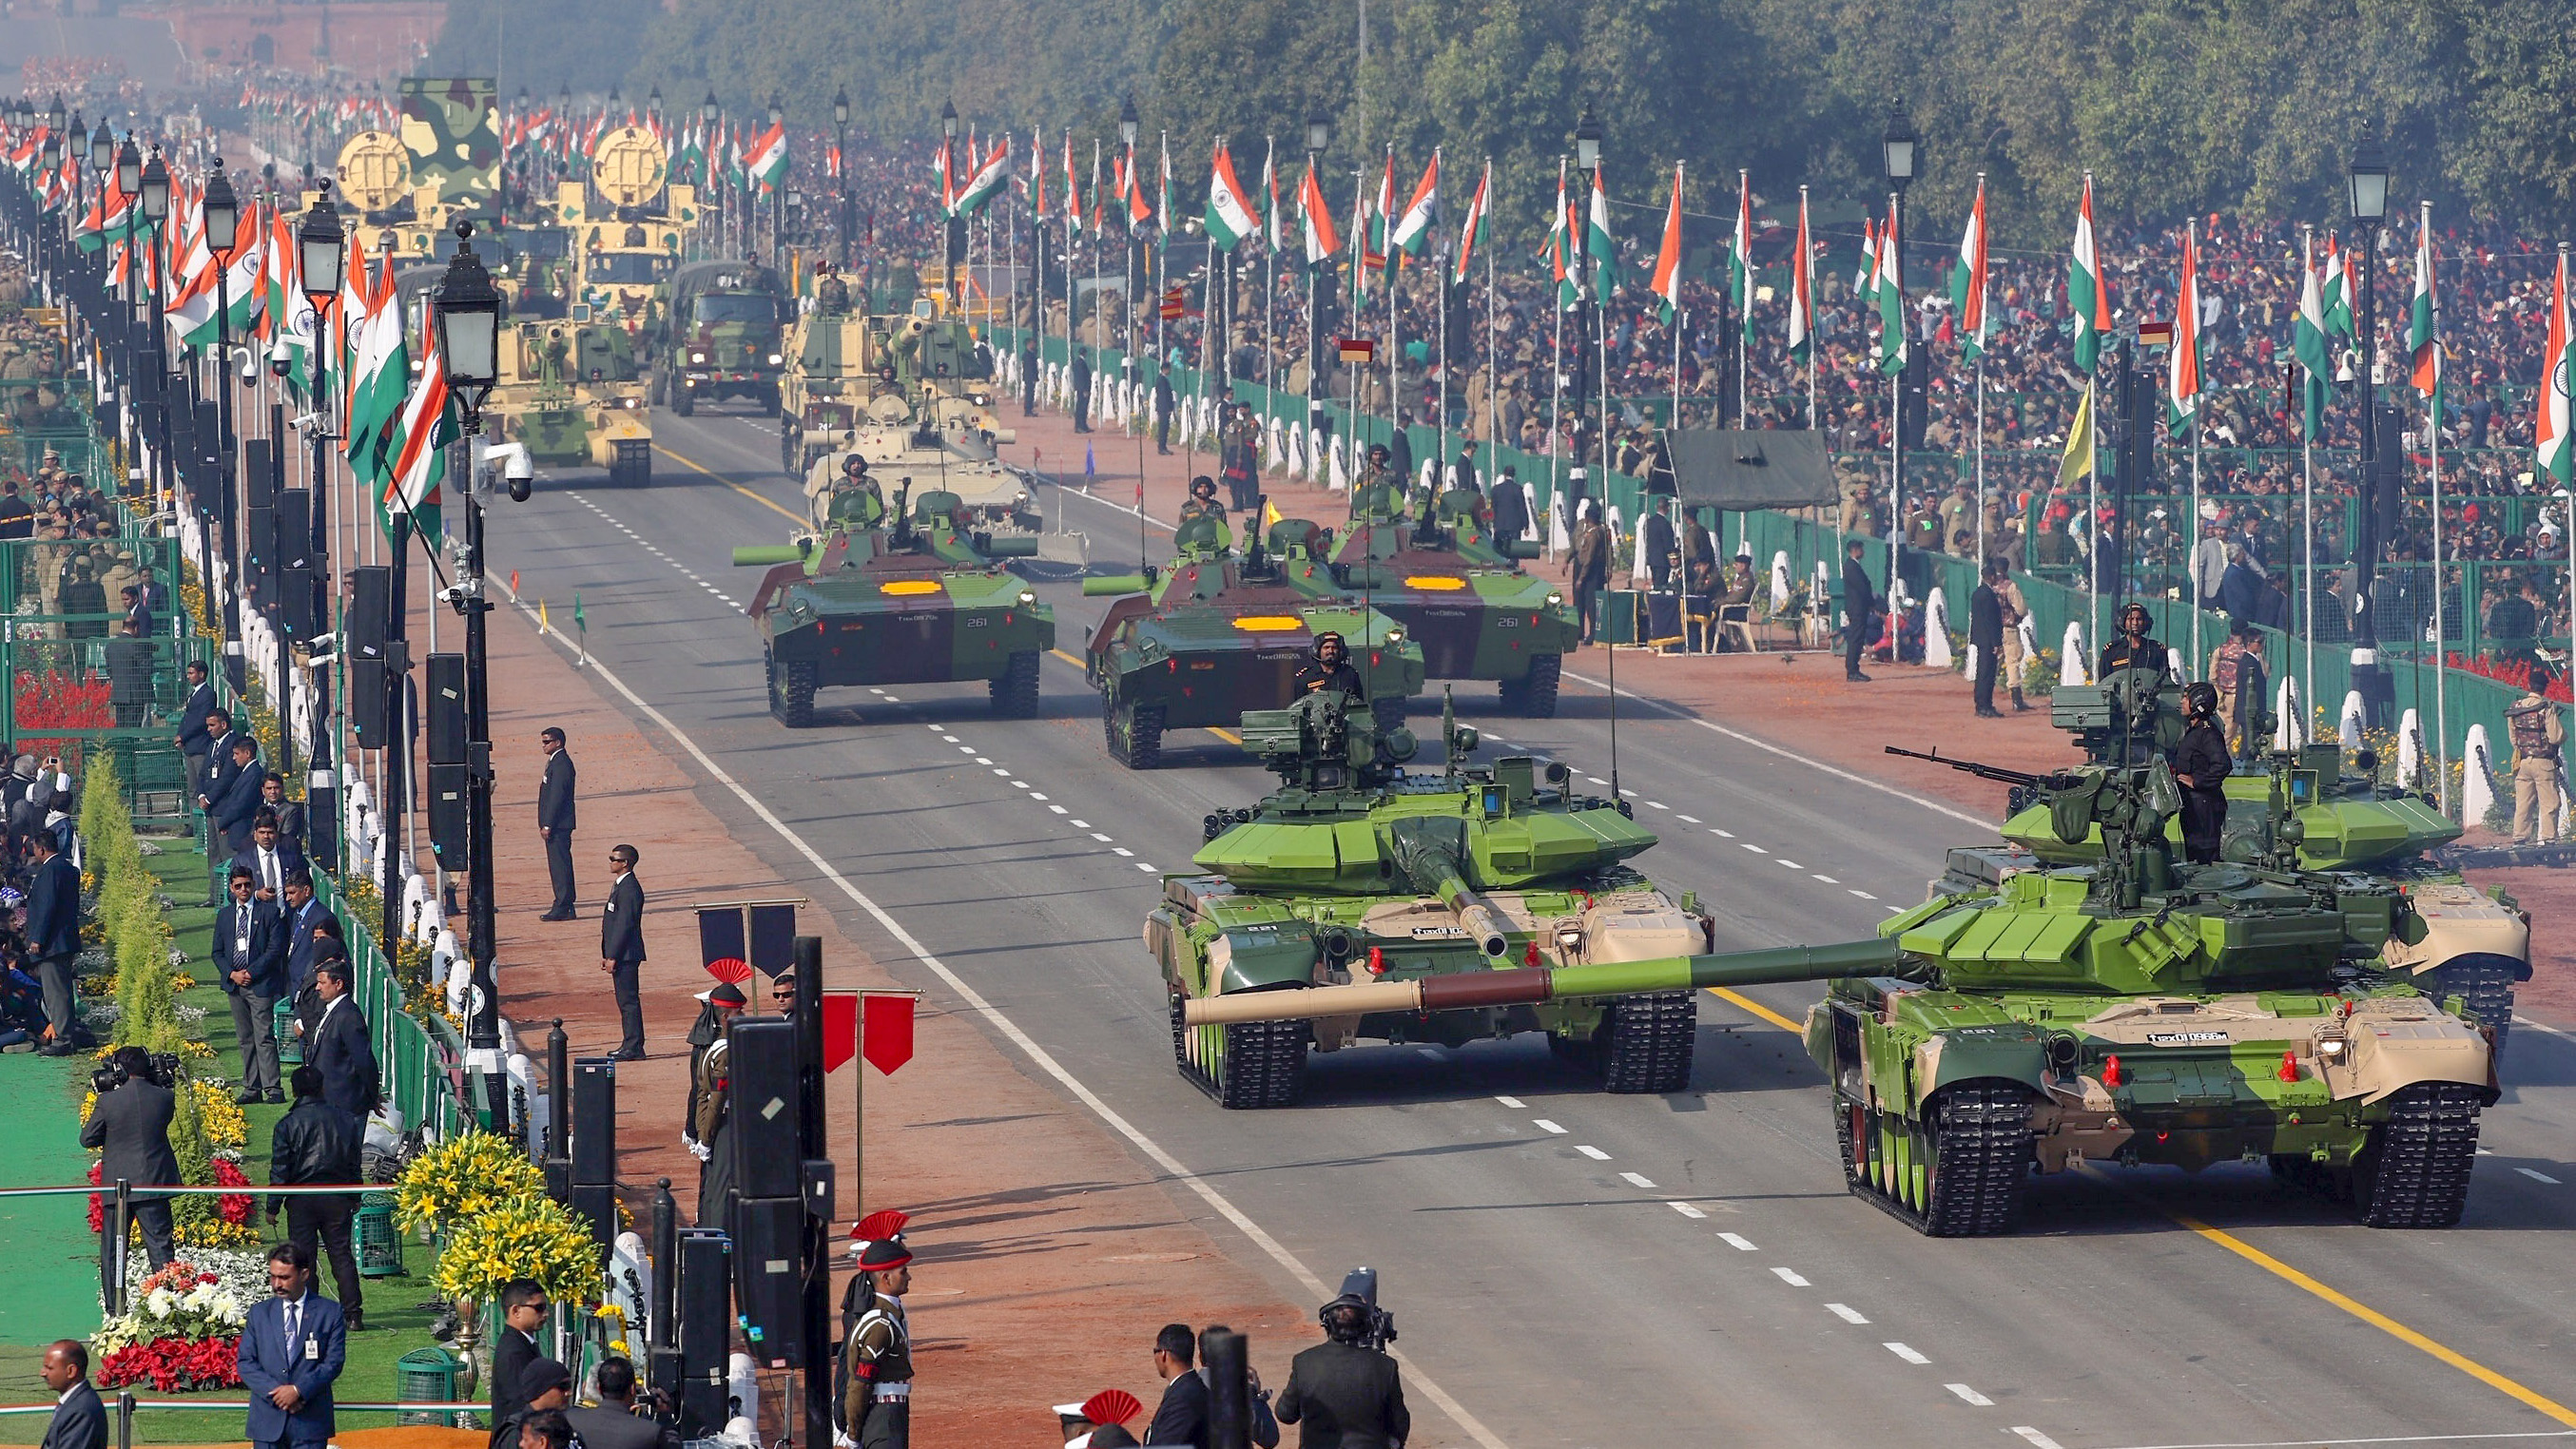 Indian army tanks and other military equipment roll past Rajpath, the ceremonial boulevard, during Republic Day parade in New Delhi, India, Saturday, Jan. 26, 2019. India marks Republic Day on Jan. 26 with military parades across the country. (AP Photo/Manish Swarup)